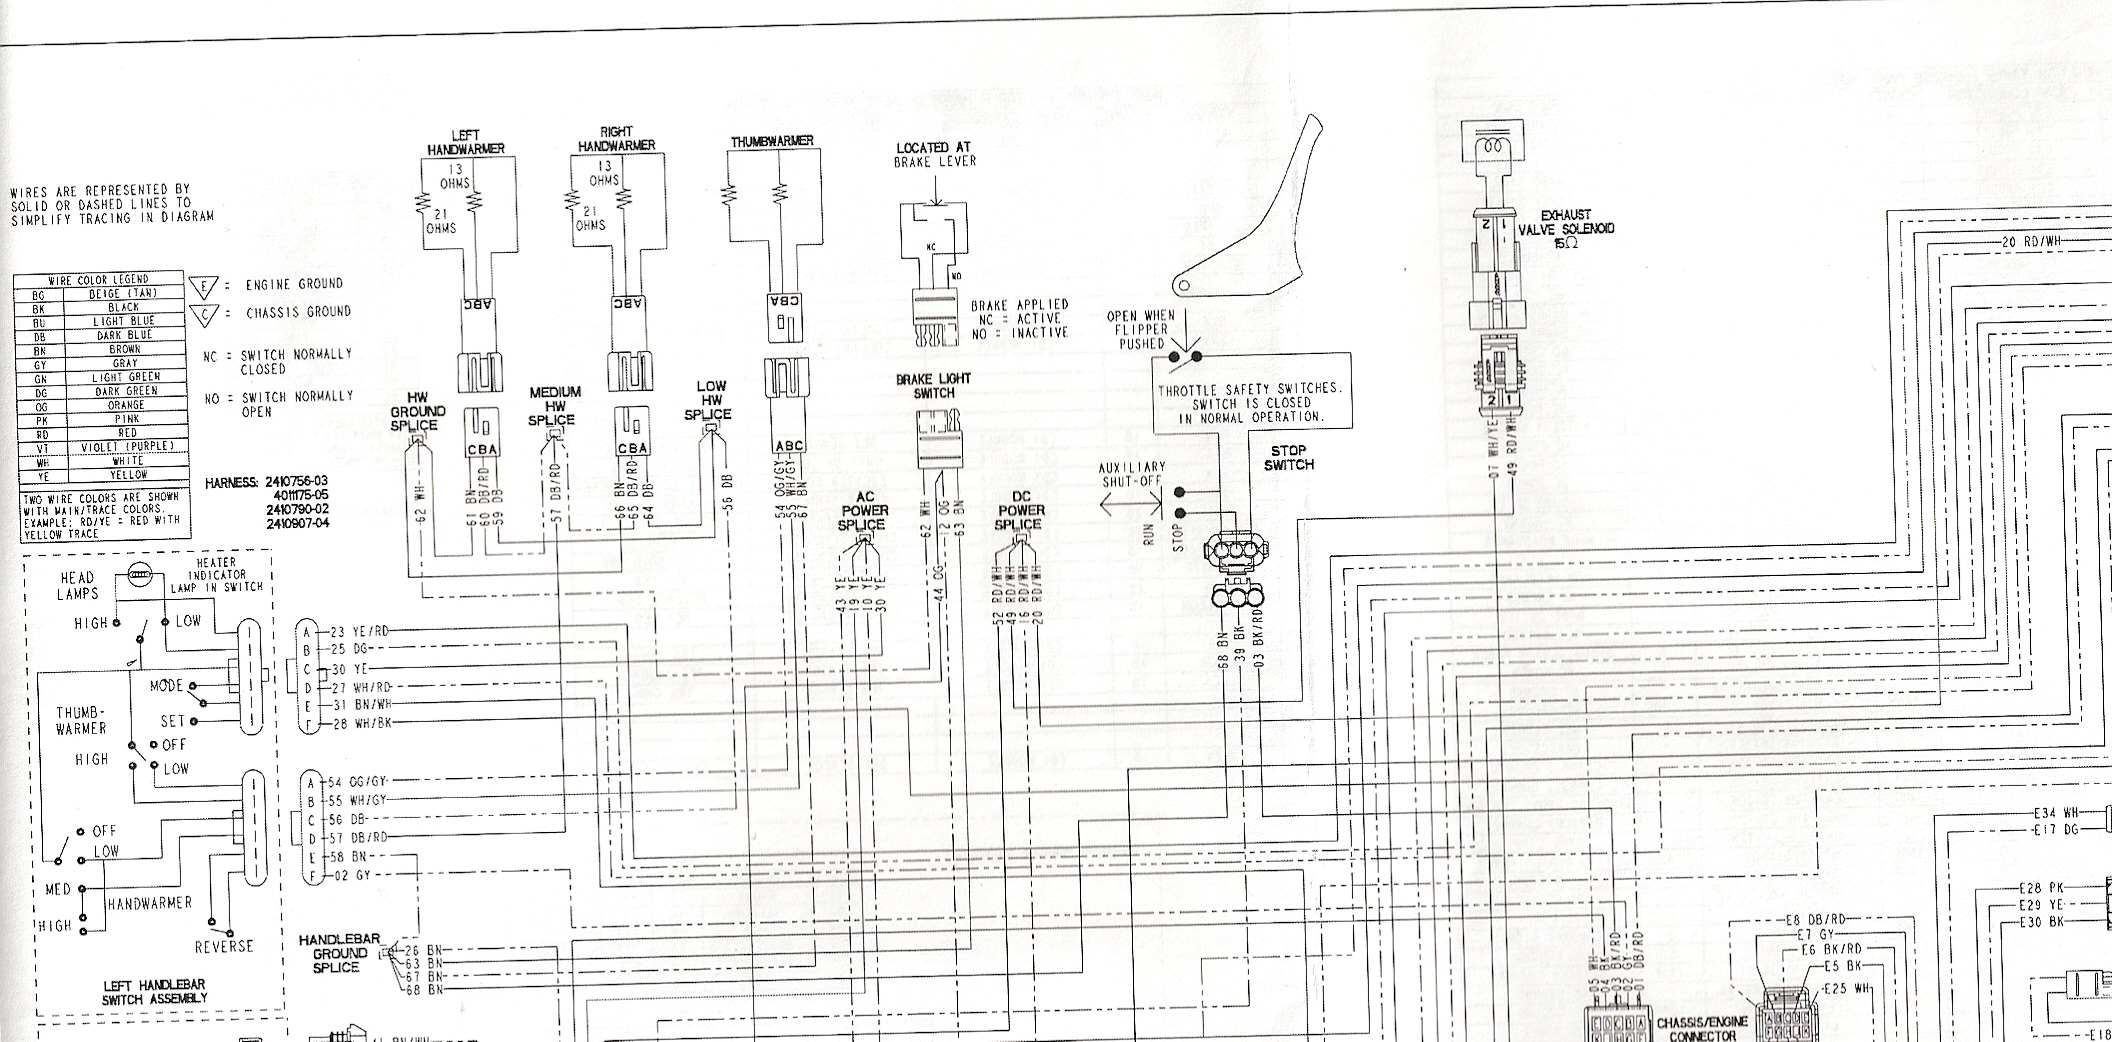 Wiring Diagram 1991 Polaris Indy 500, Wiring, Free Engine